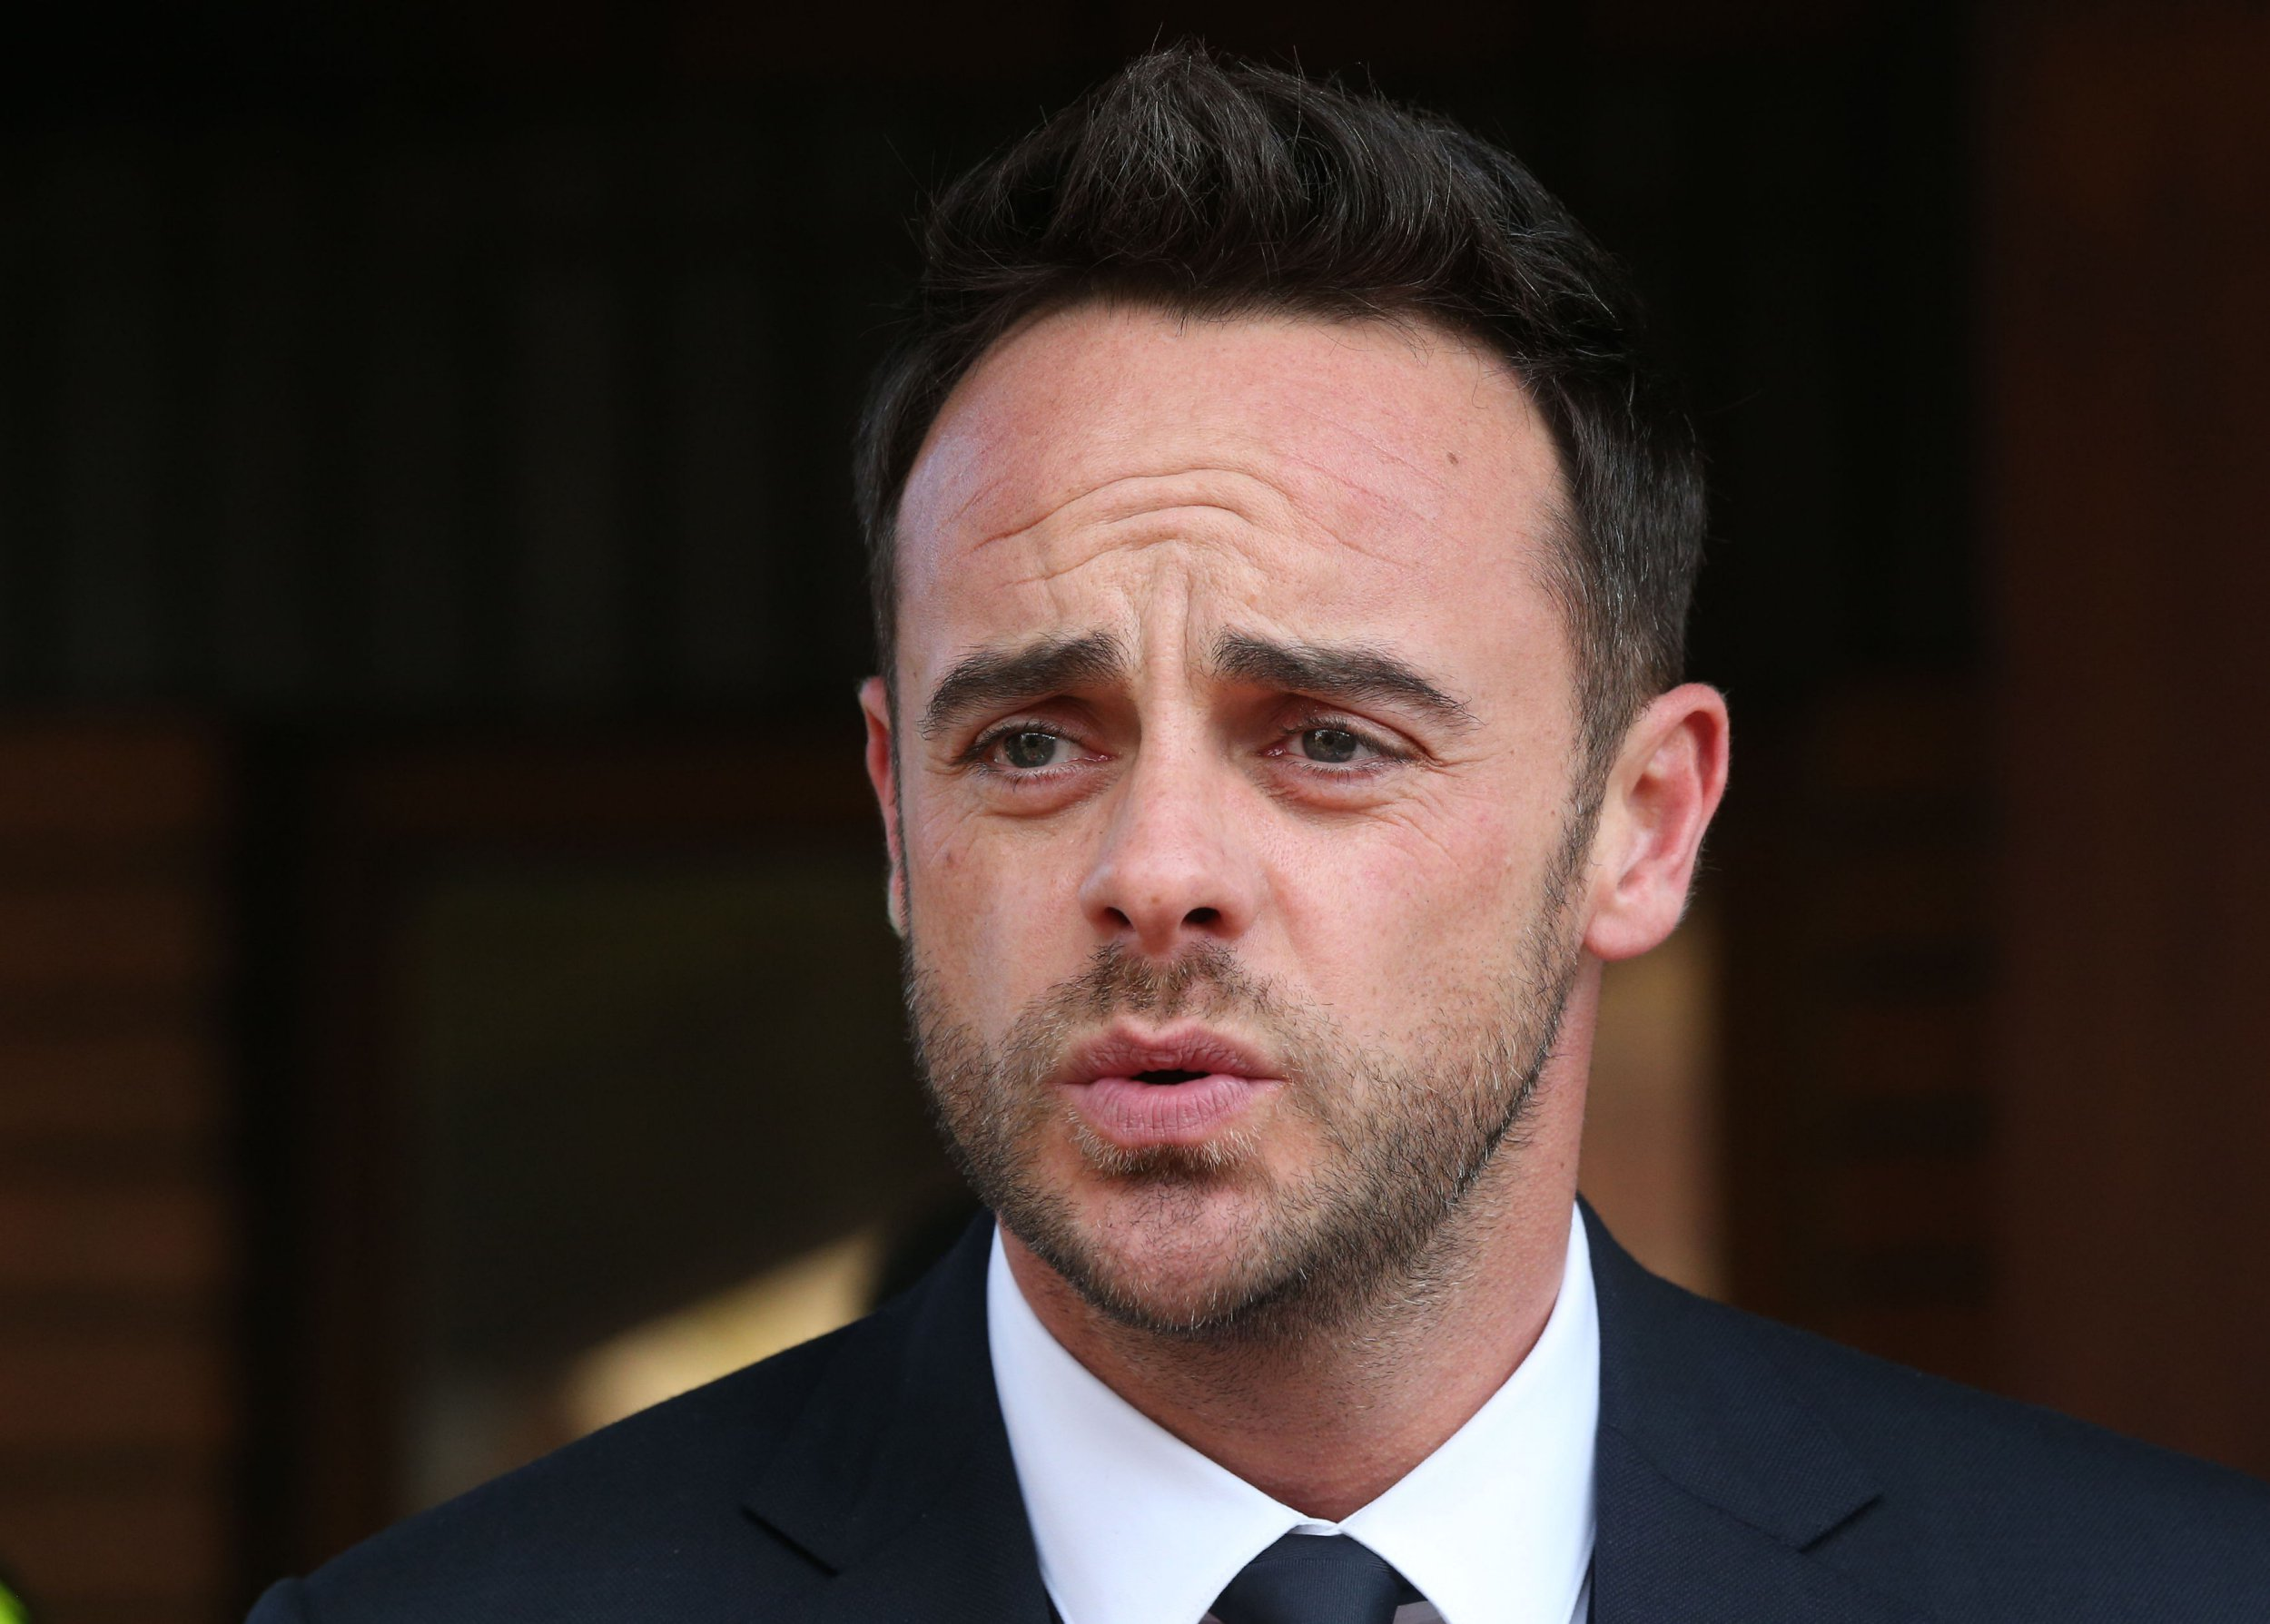 Ant McPartlin's Britain's Got Talent return planned 'many months ago' as break from television commitments comes to an end